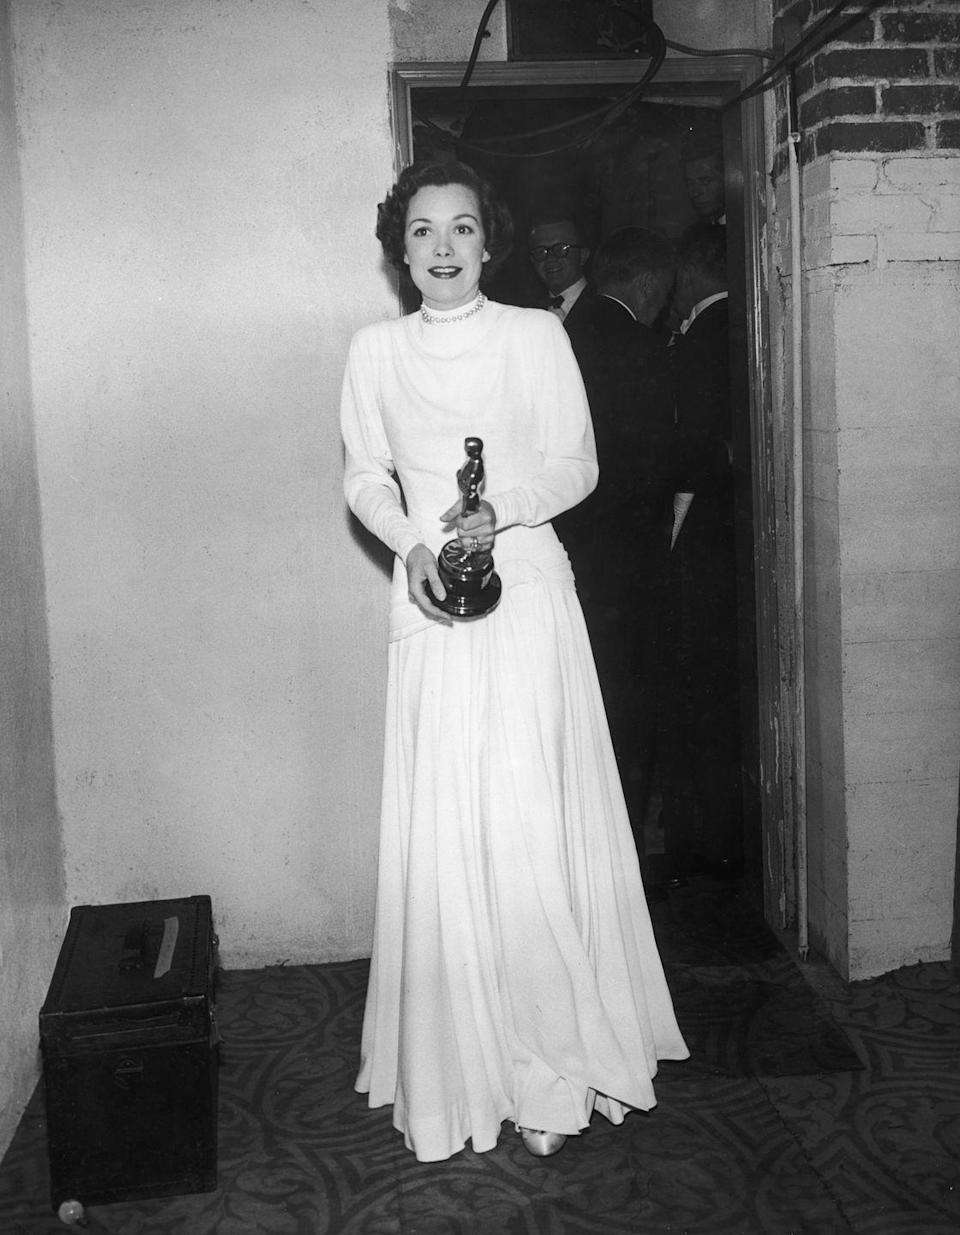 <p>The long-sleeve, high-collar dress was a popular silhouette back in the day, but Jane differentiated herself from the crowd with one in a bright-white color. She wore her pearl necklace over the fabric and clutched her Oscar award for her performance in <em>Johnny Belinda</em>.</p>